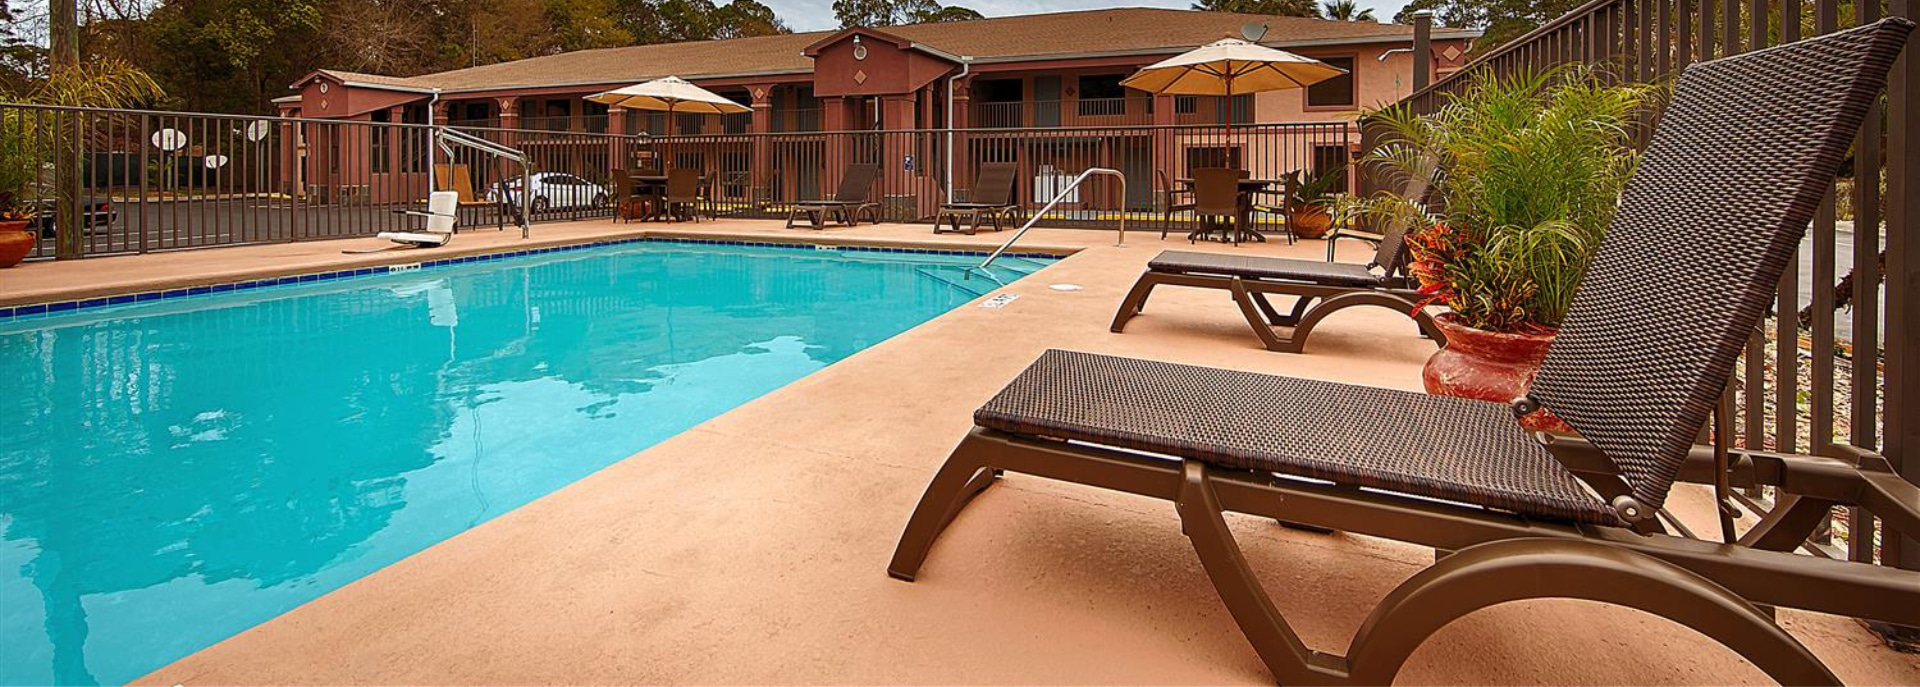 Best Western Pool in Apalachicola